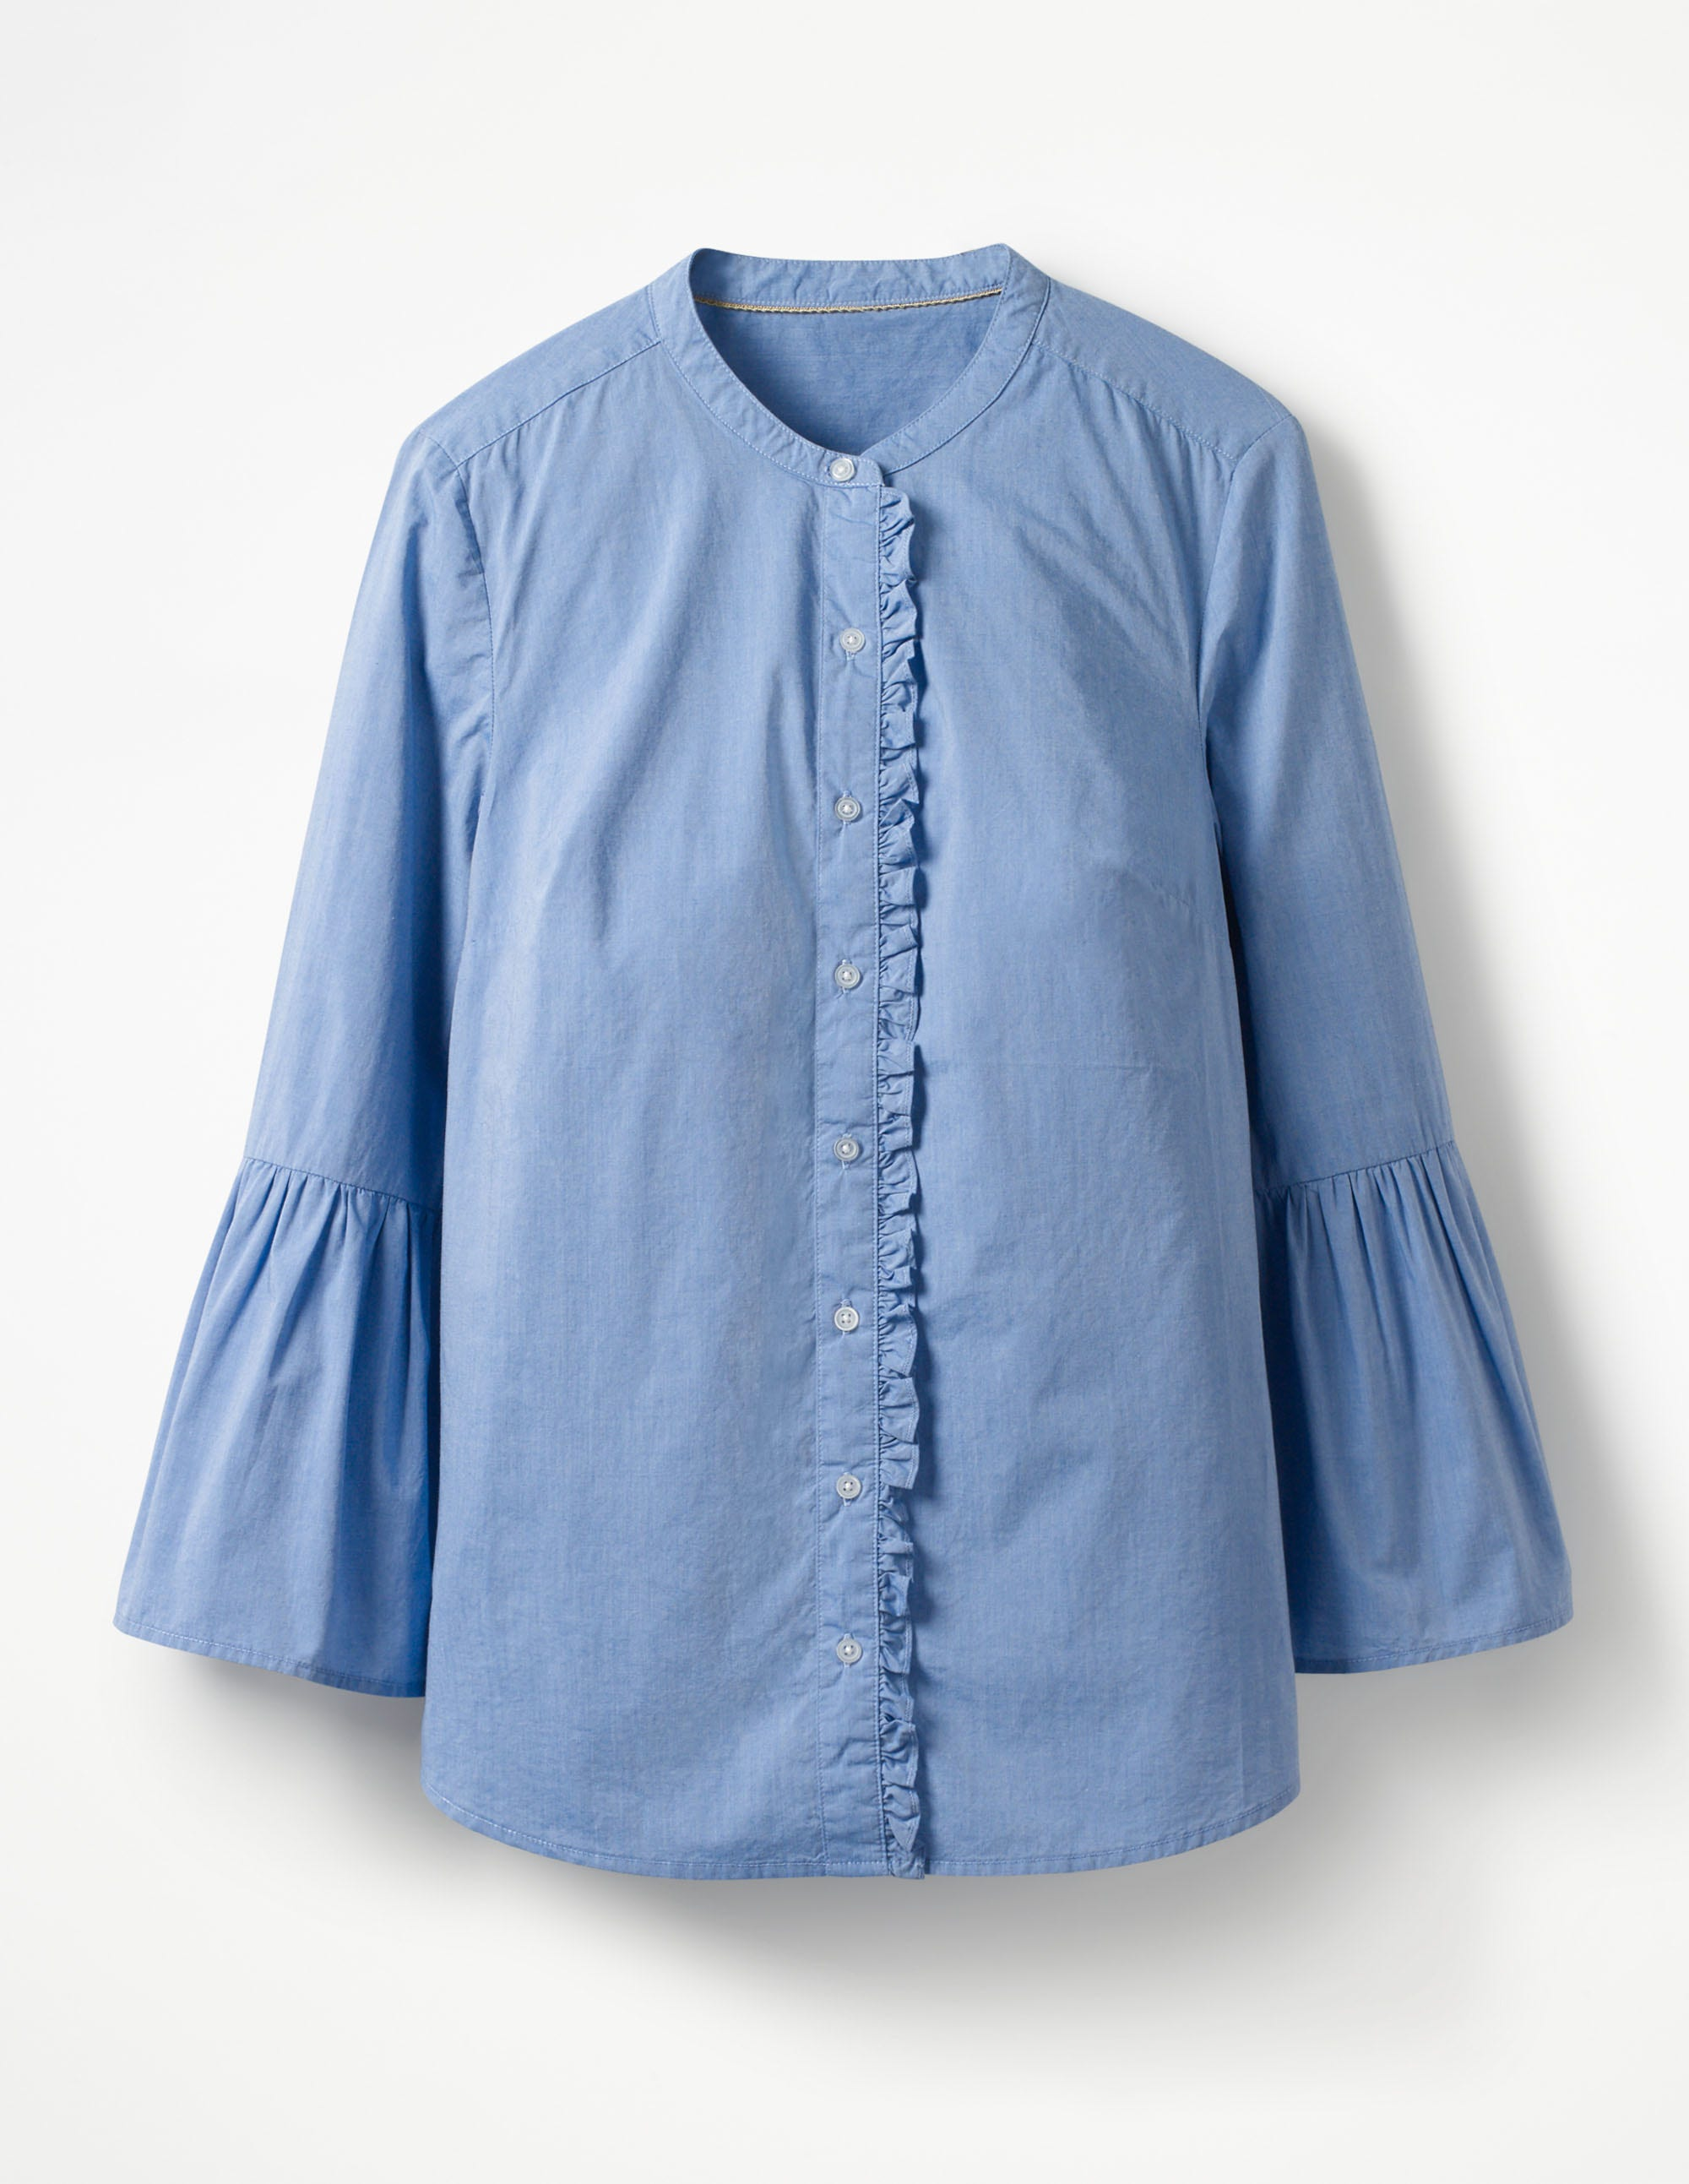 Chemise à manches cloche BLU Femme Boden, Chambray